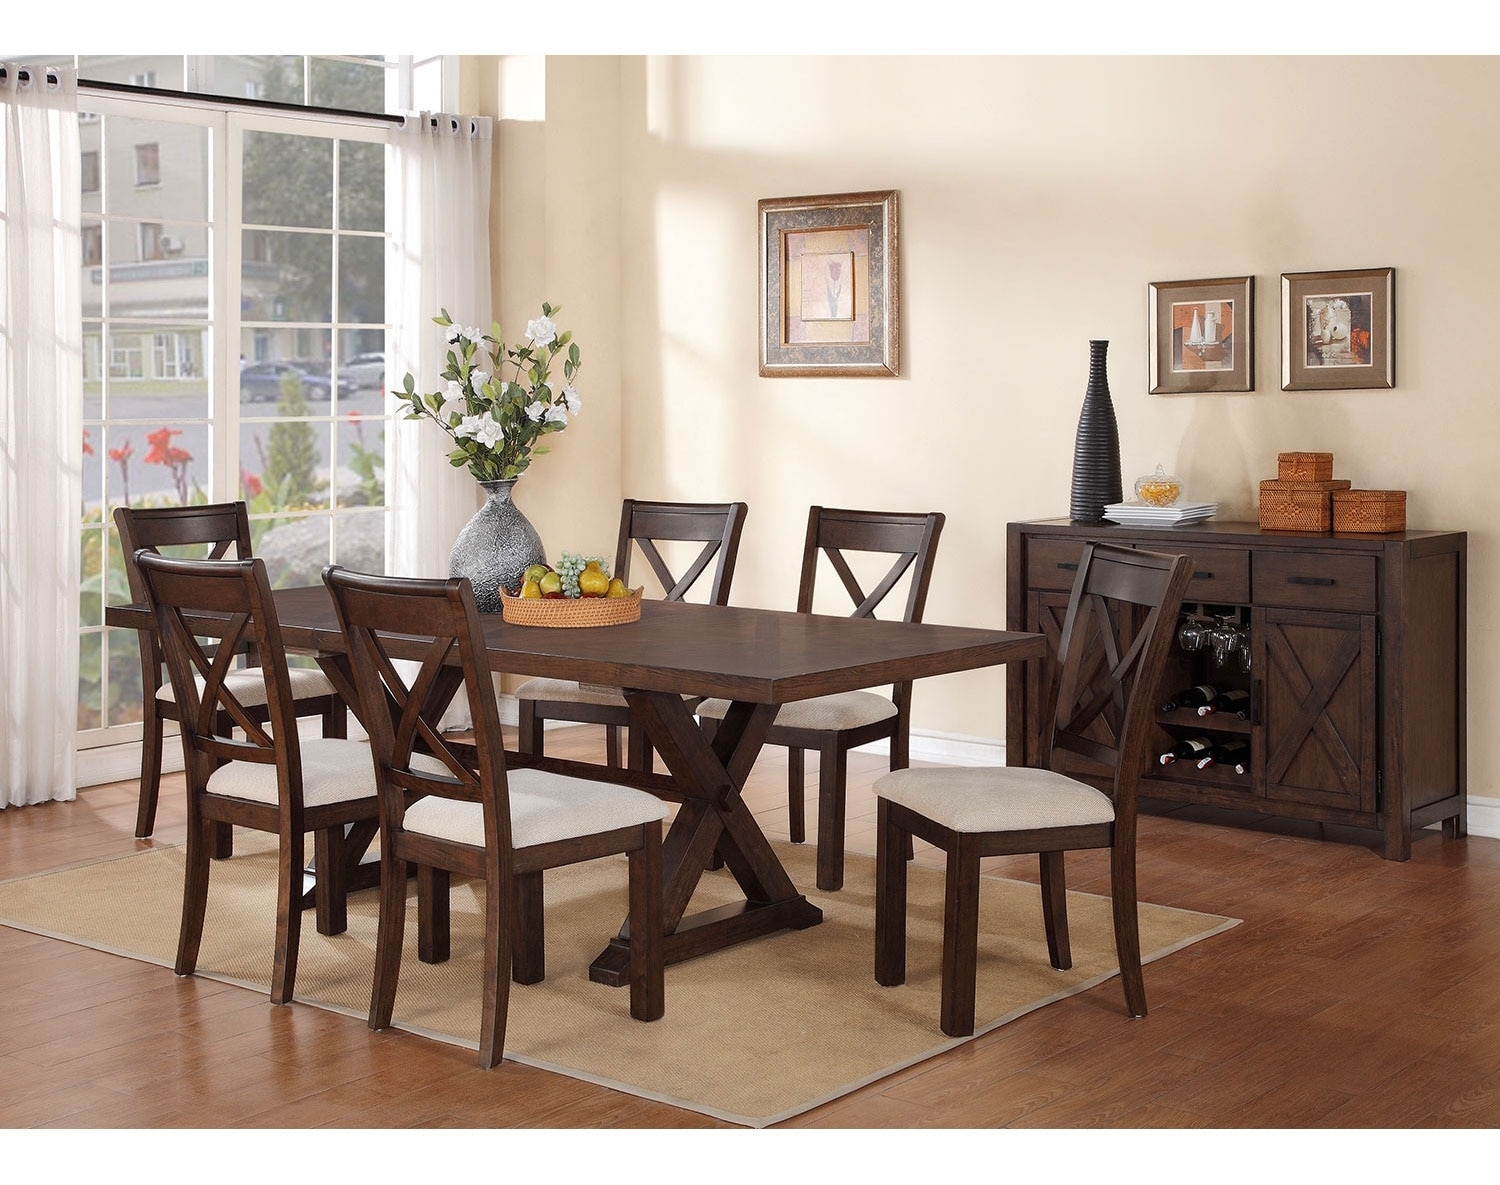 Dining room collections sets canada leon s